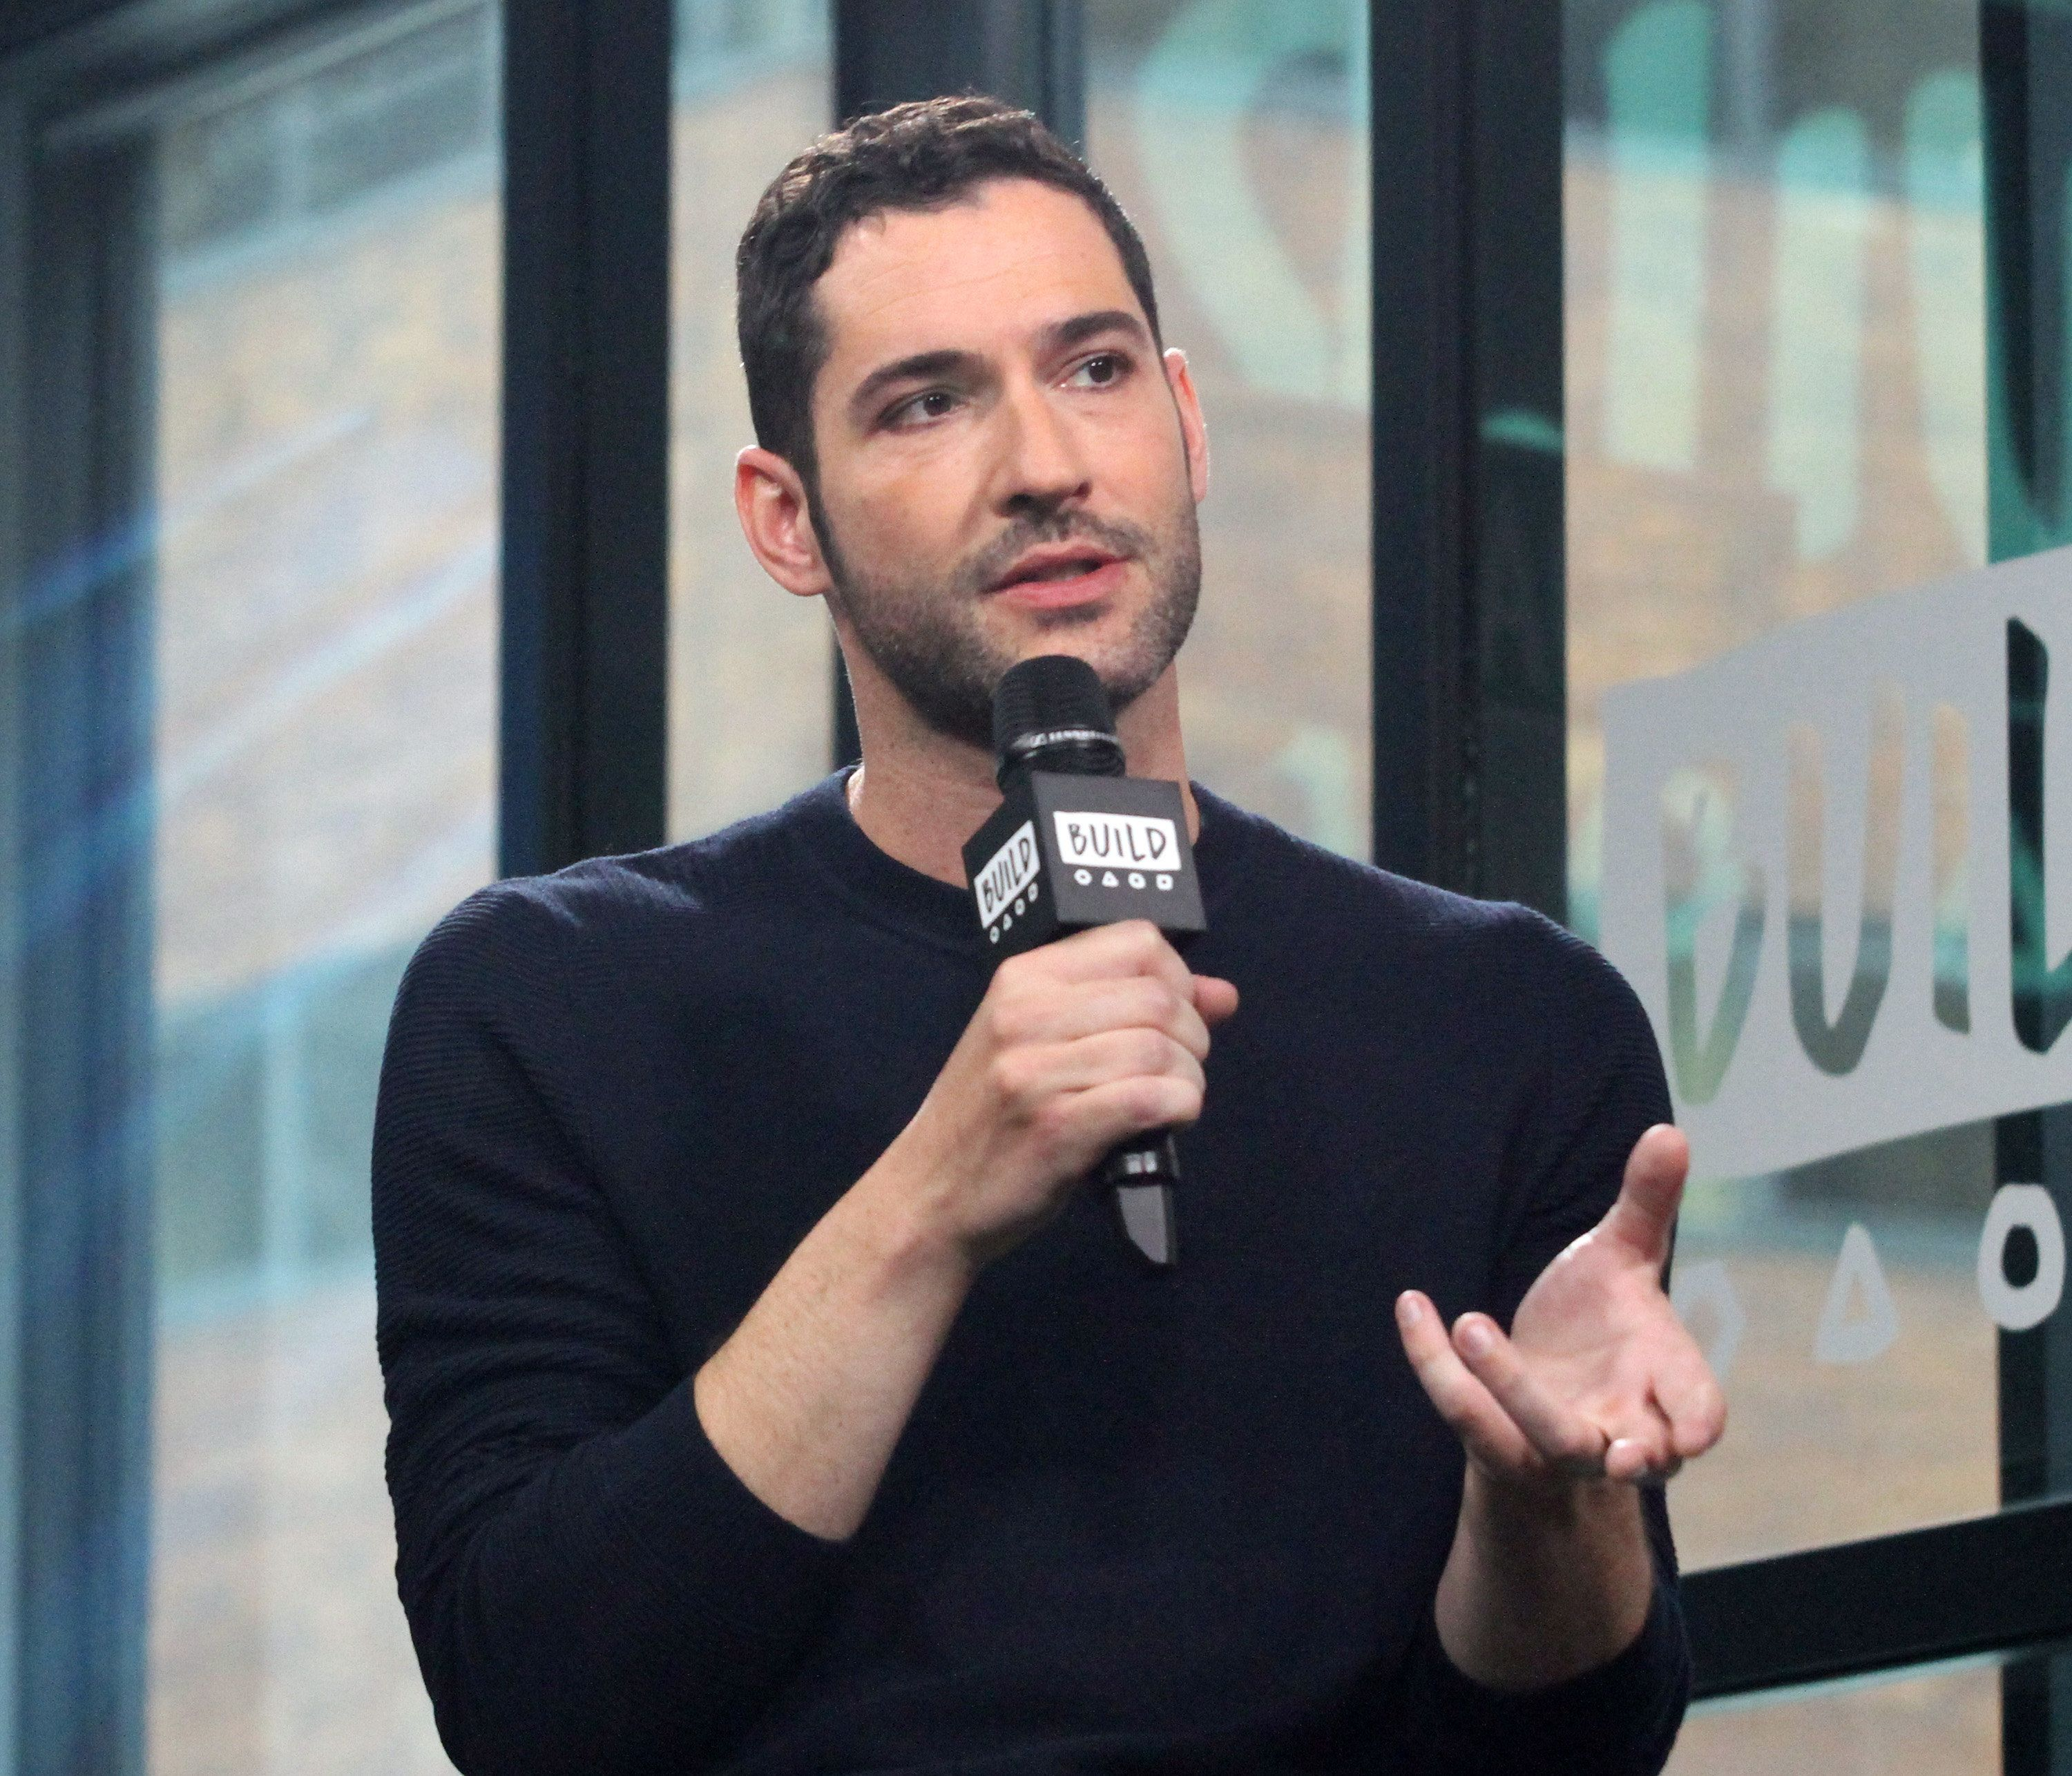 NEW YORK, NY - MAY 12:  Tom Ellis appears to promote 'Lucifer' during the BUILD Series at Build Studio on May 12, 2017 in New York City.  (Photo by Donna Ward/Getty Images)